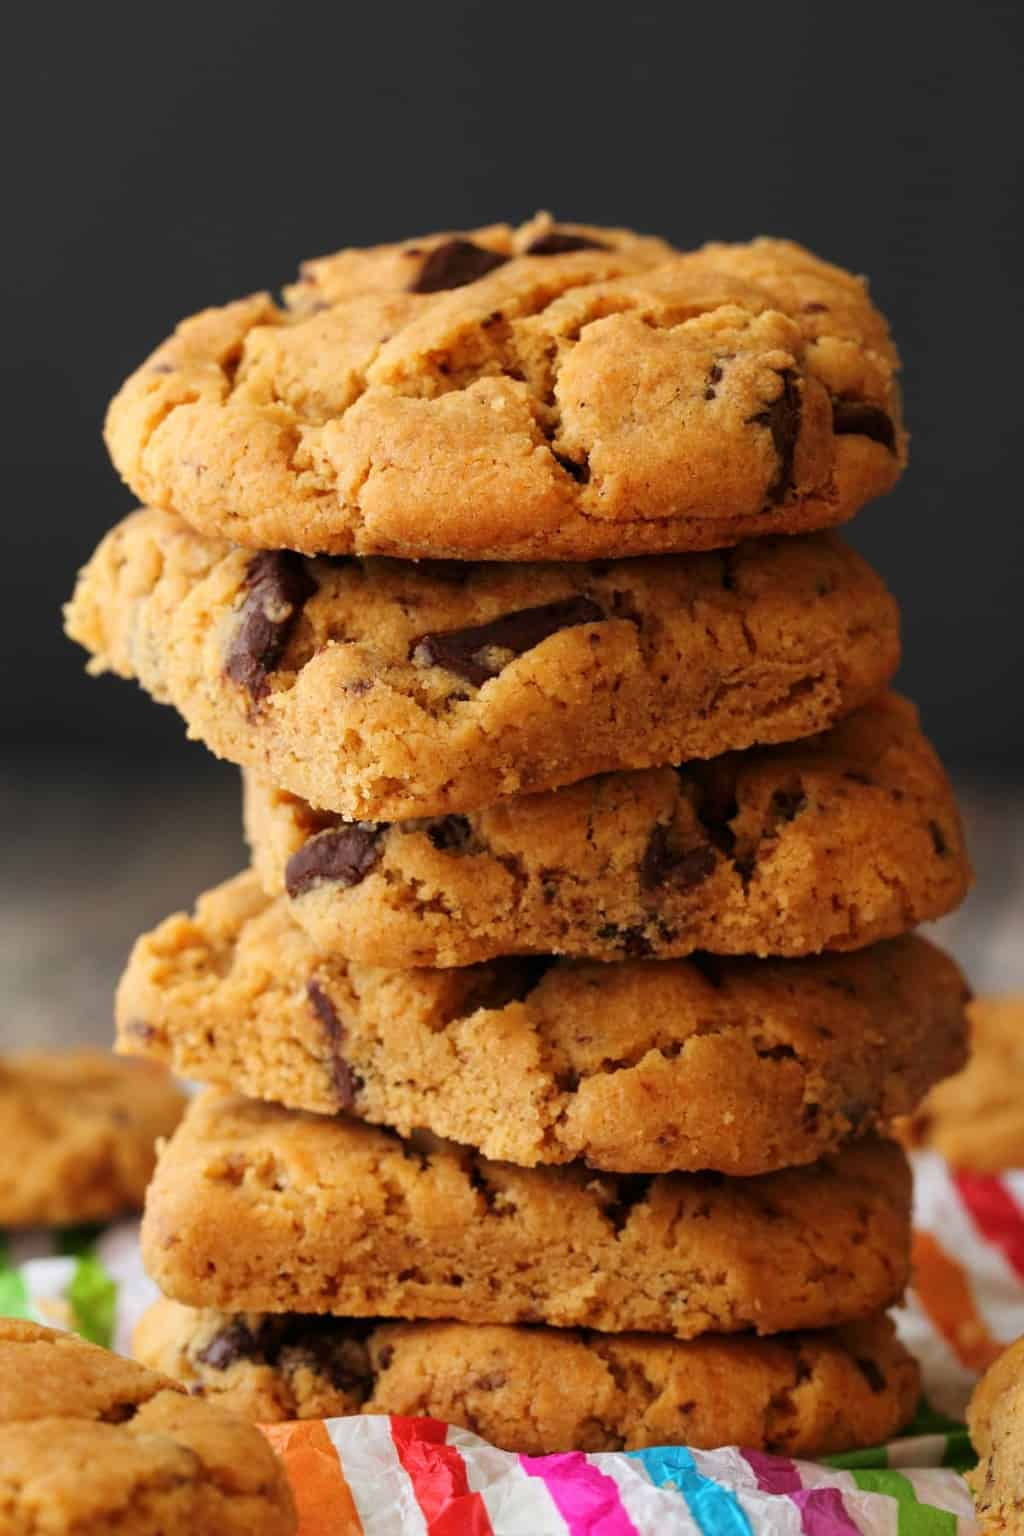 Vegan Peanut Butter Chocolate Chip Cookies in a stack against a dark background.